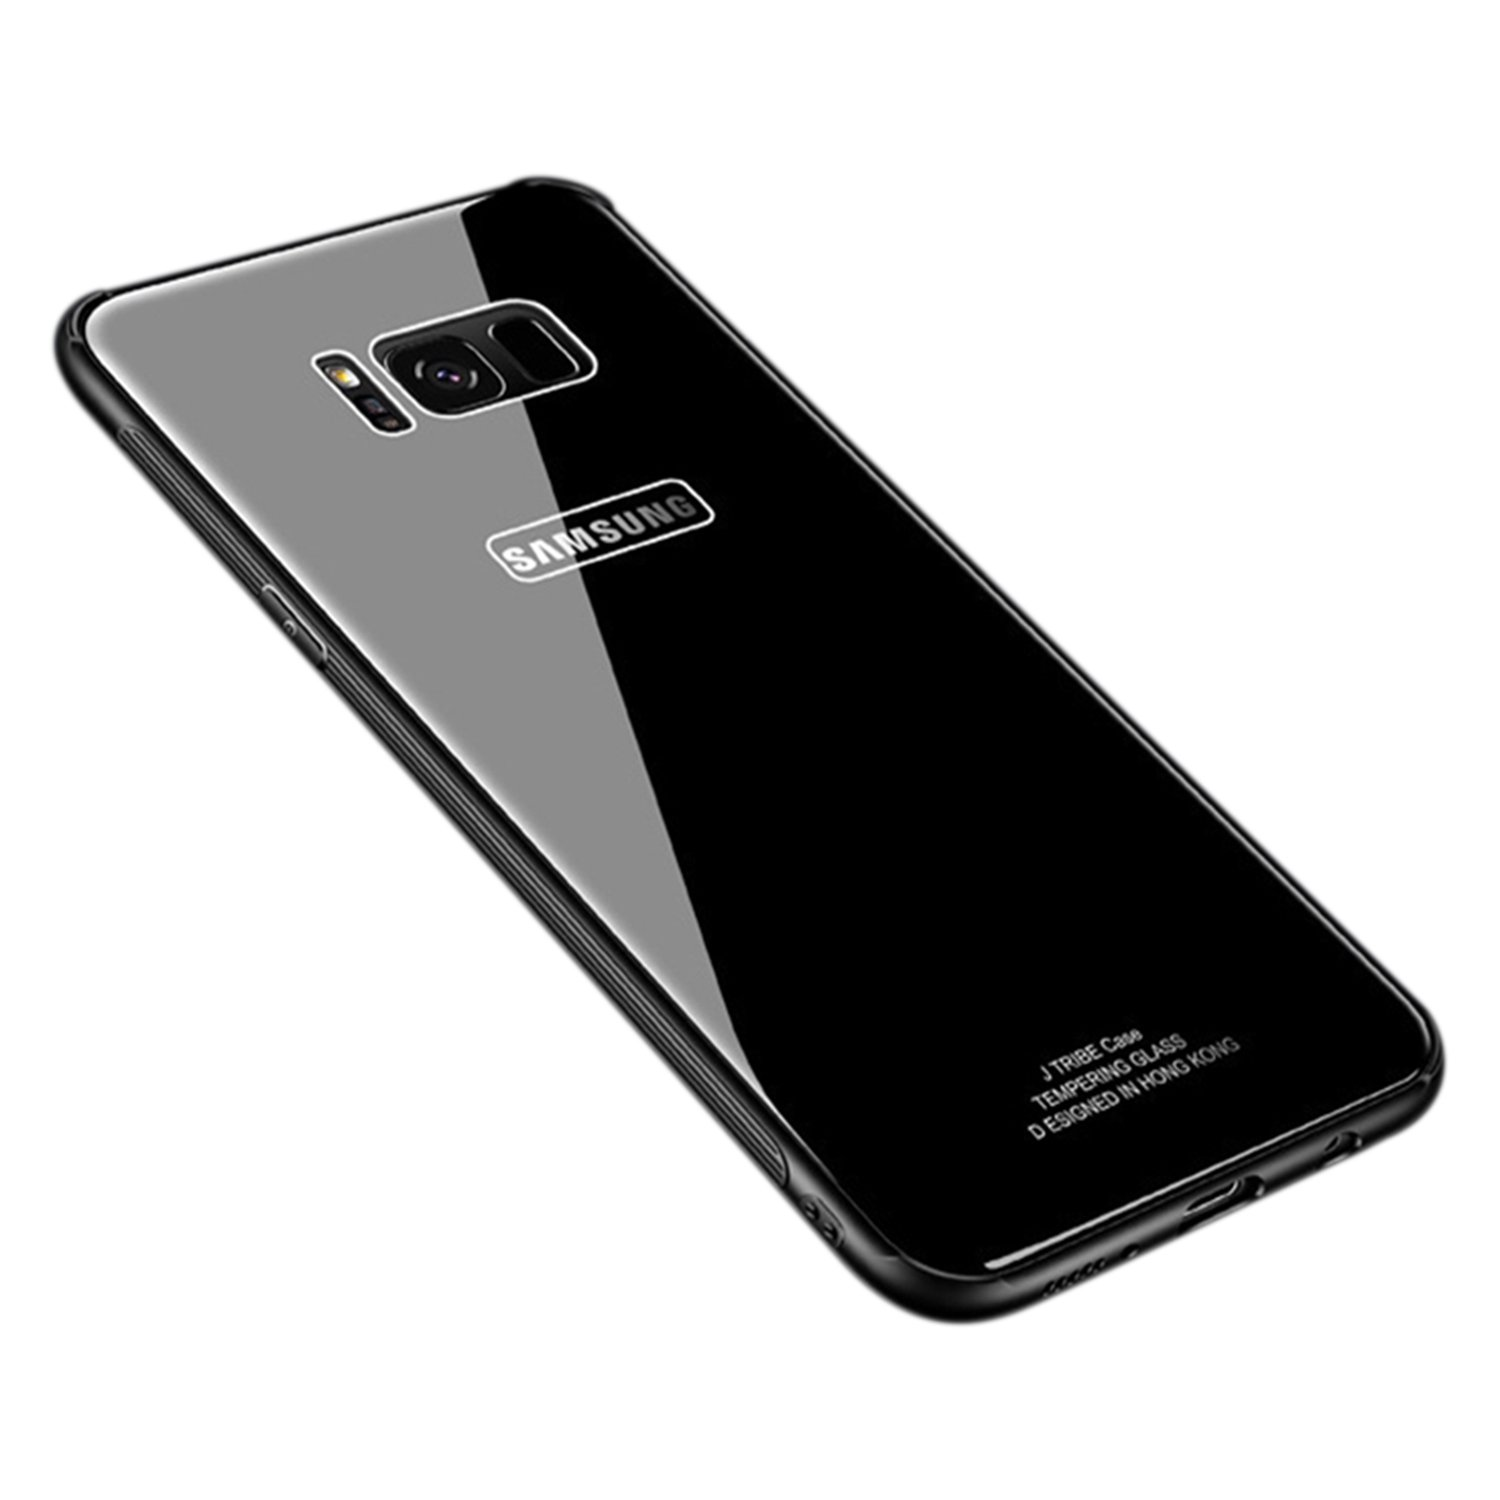 Ldea Galaxy S8 Case, Silicone Shockproof Tempered Glass Back Cover Shell (Black)